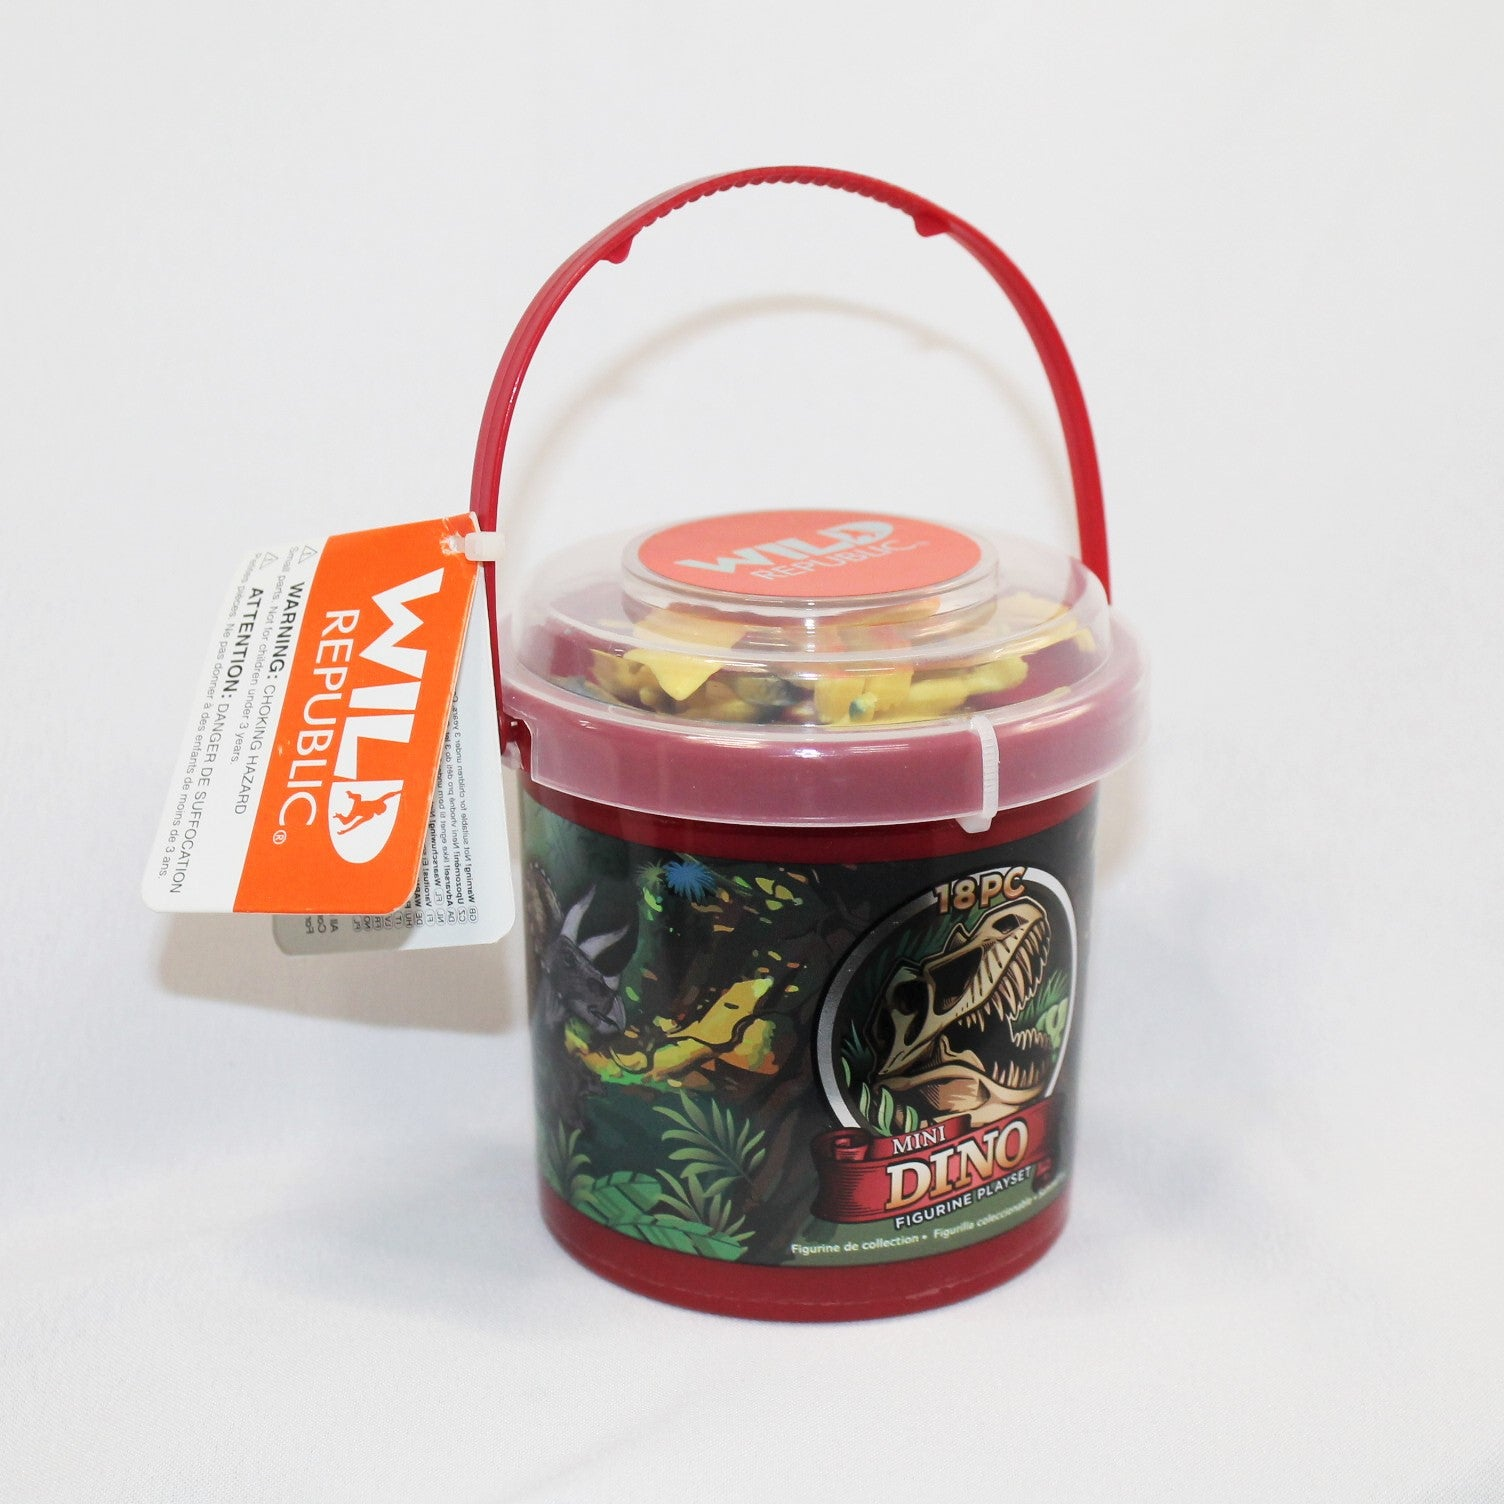 Mini Bucket of Dinosaurs!